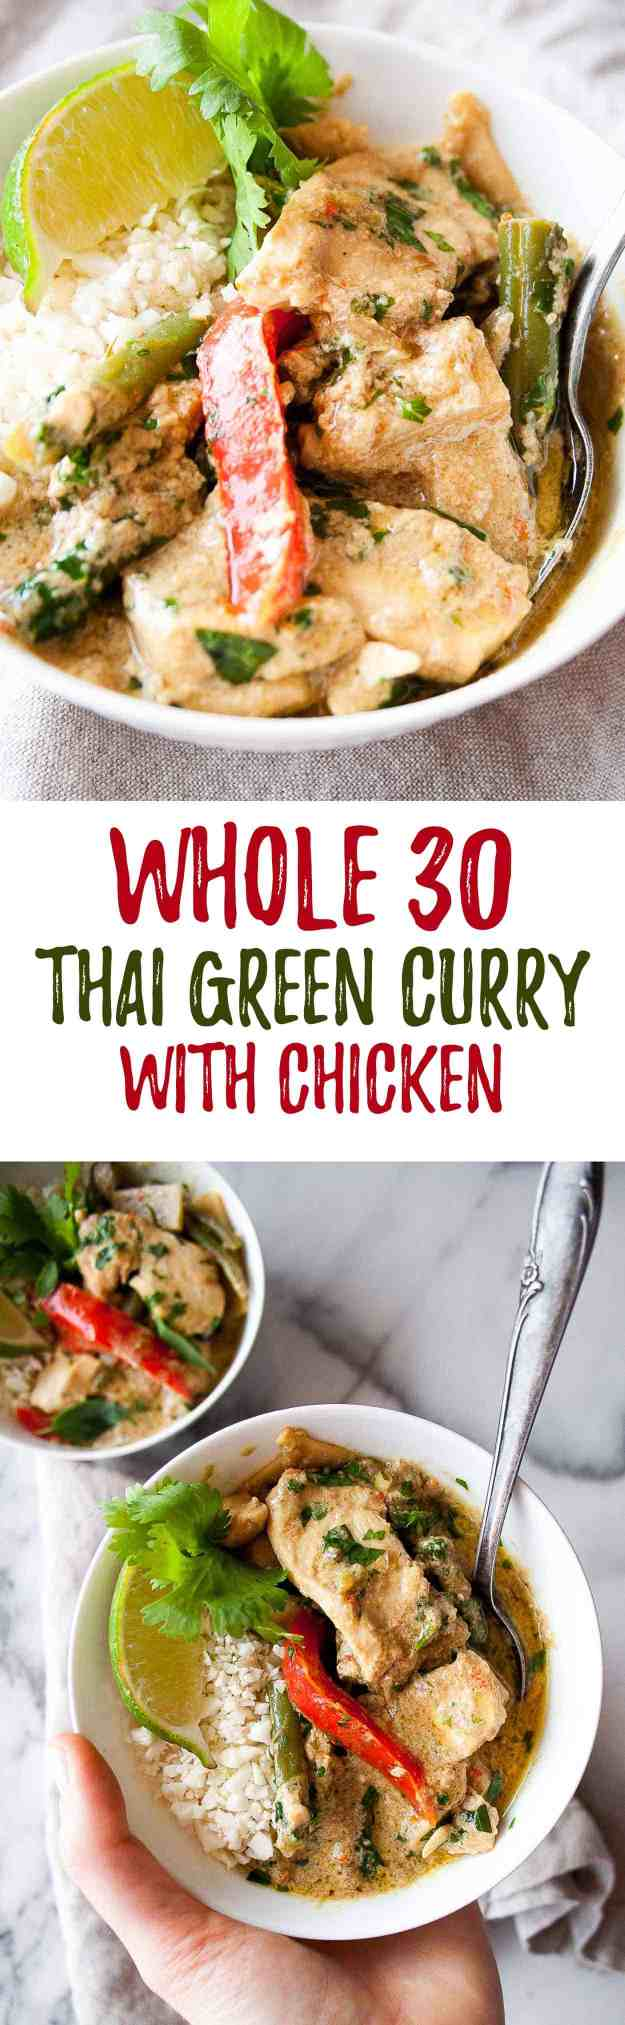 Whole30 Green Curry with Chicken | Thai, recipe, easy, paleo, gluten free, grain free, diary free, curry paste, coconut, sauce, coconut butter | hungrybynature.com